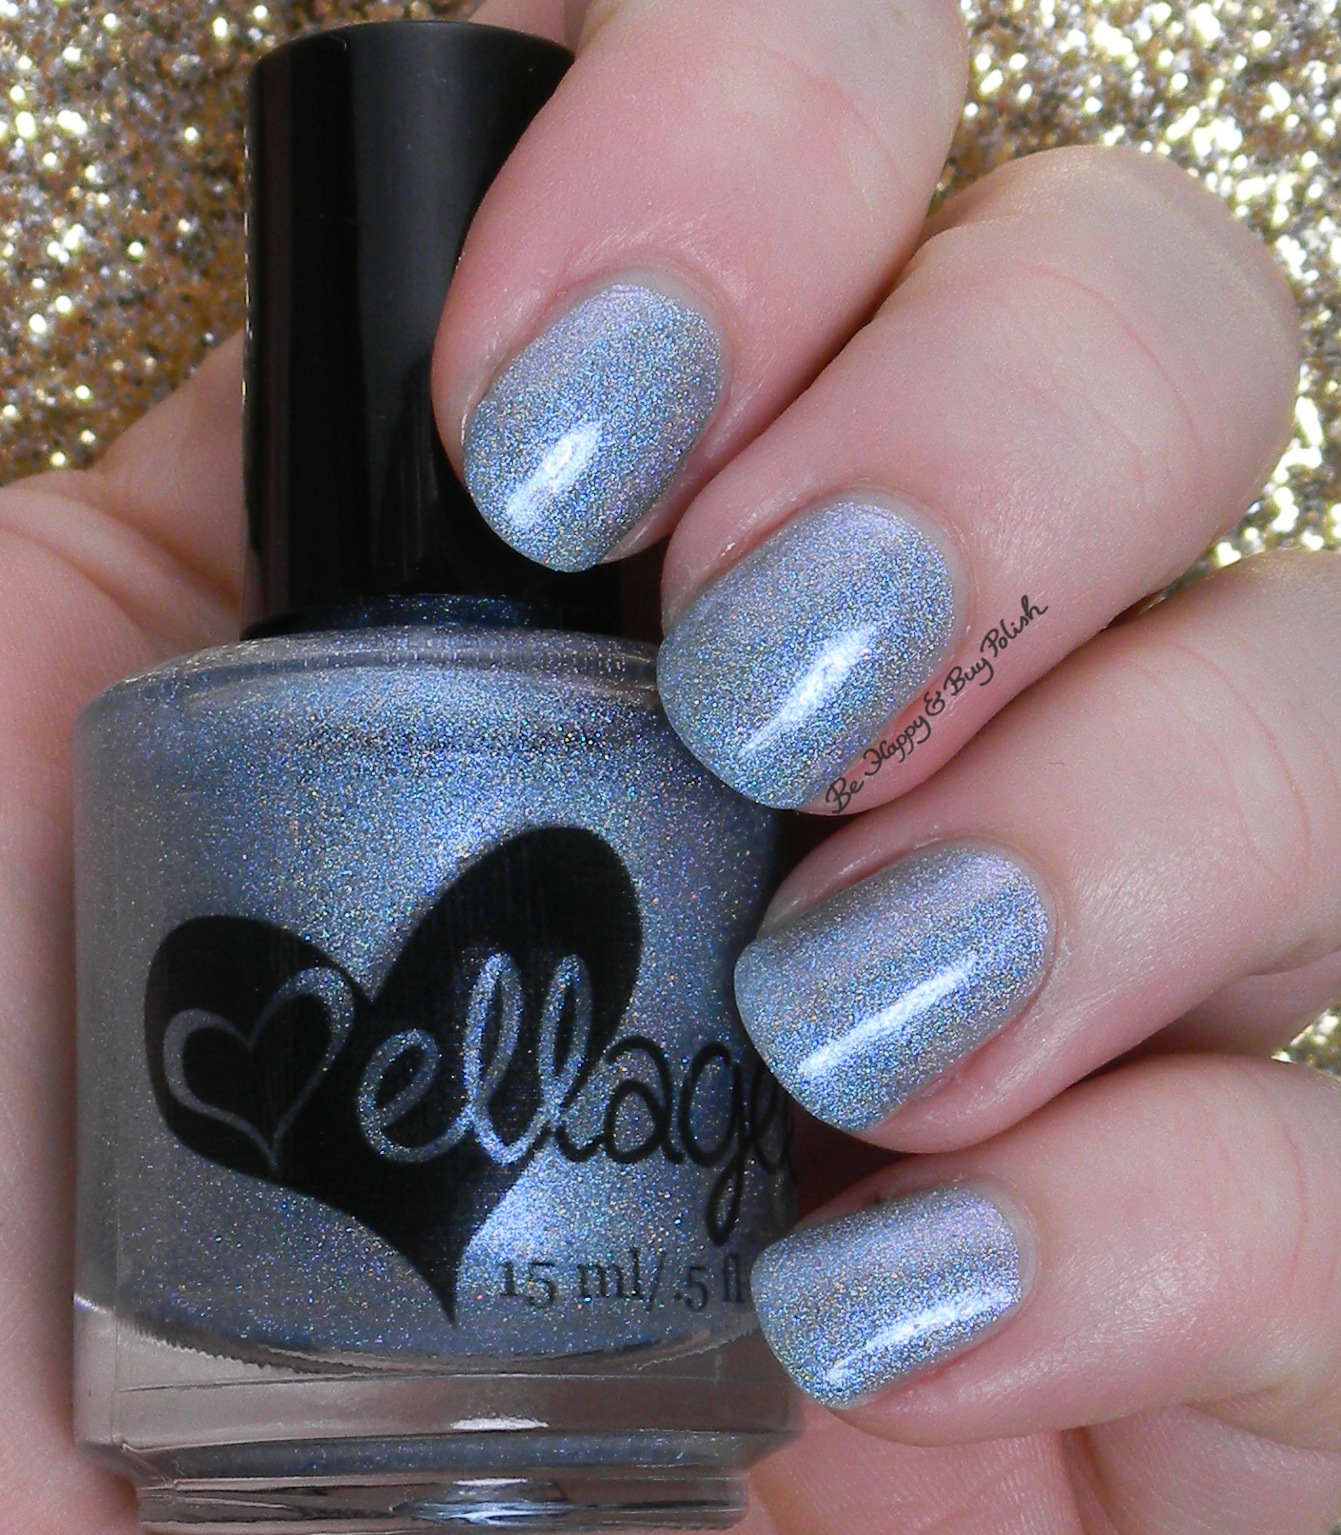 Blue Christmas Nail Art: 12 Days Of Christmas Nail Art: Ice Blue And White